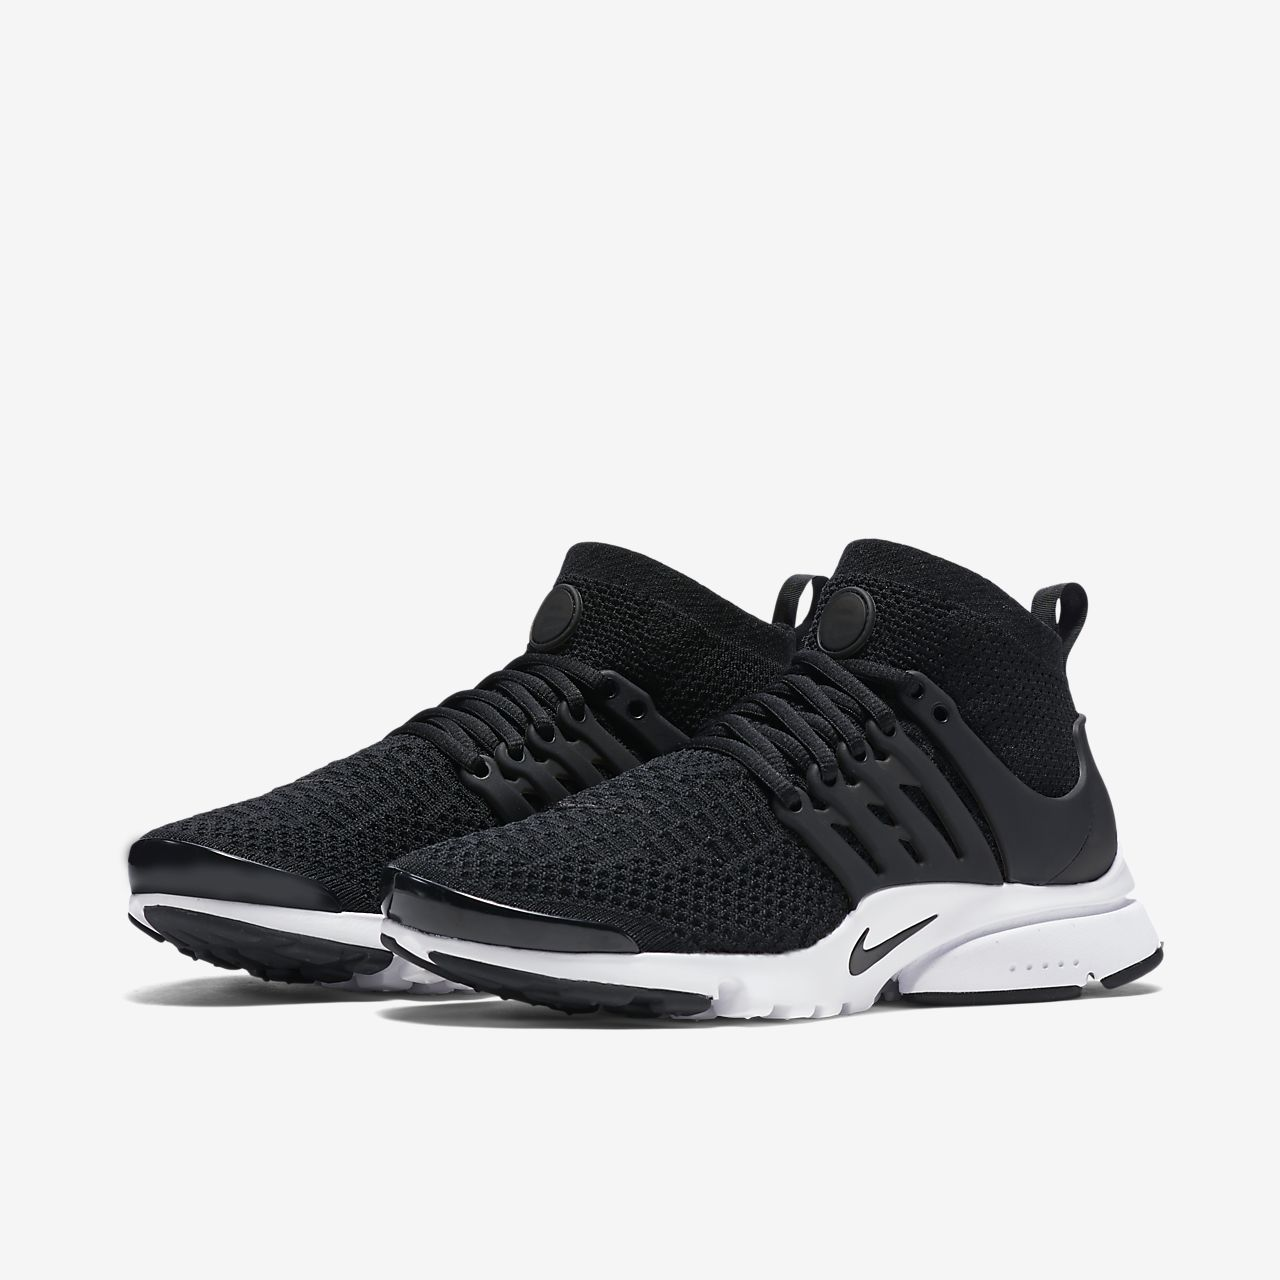 dc7d72a70737 Nike Air Presto Ultra Flyknit   Buy Nike Shoes   Sneakers ...